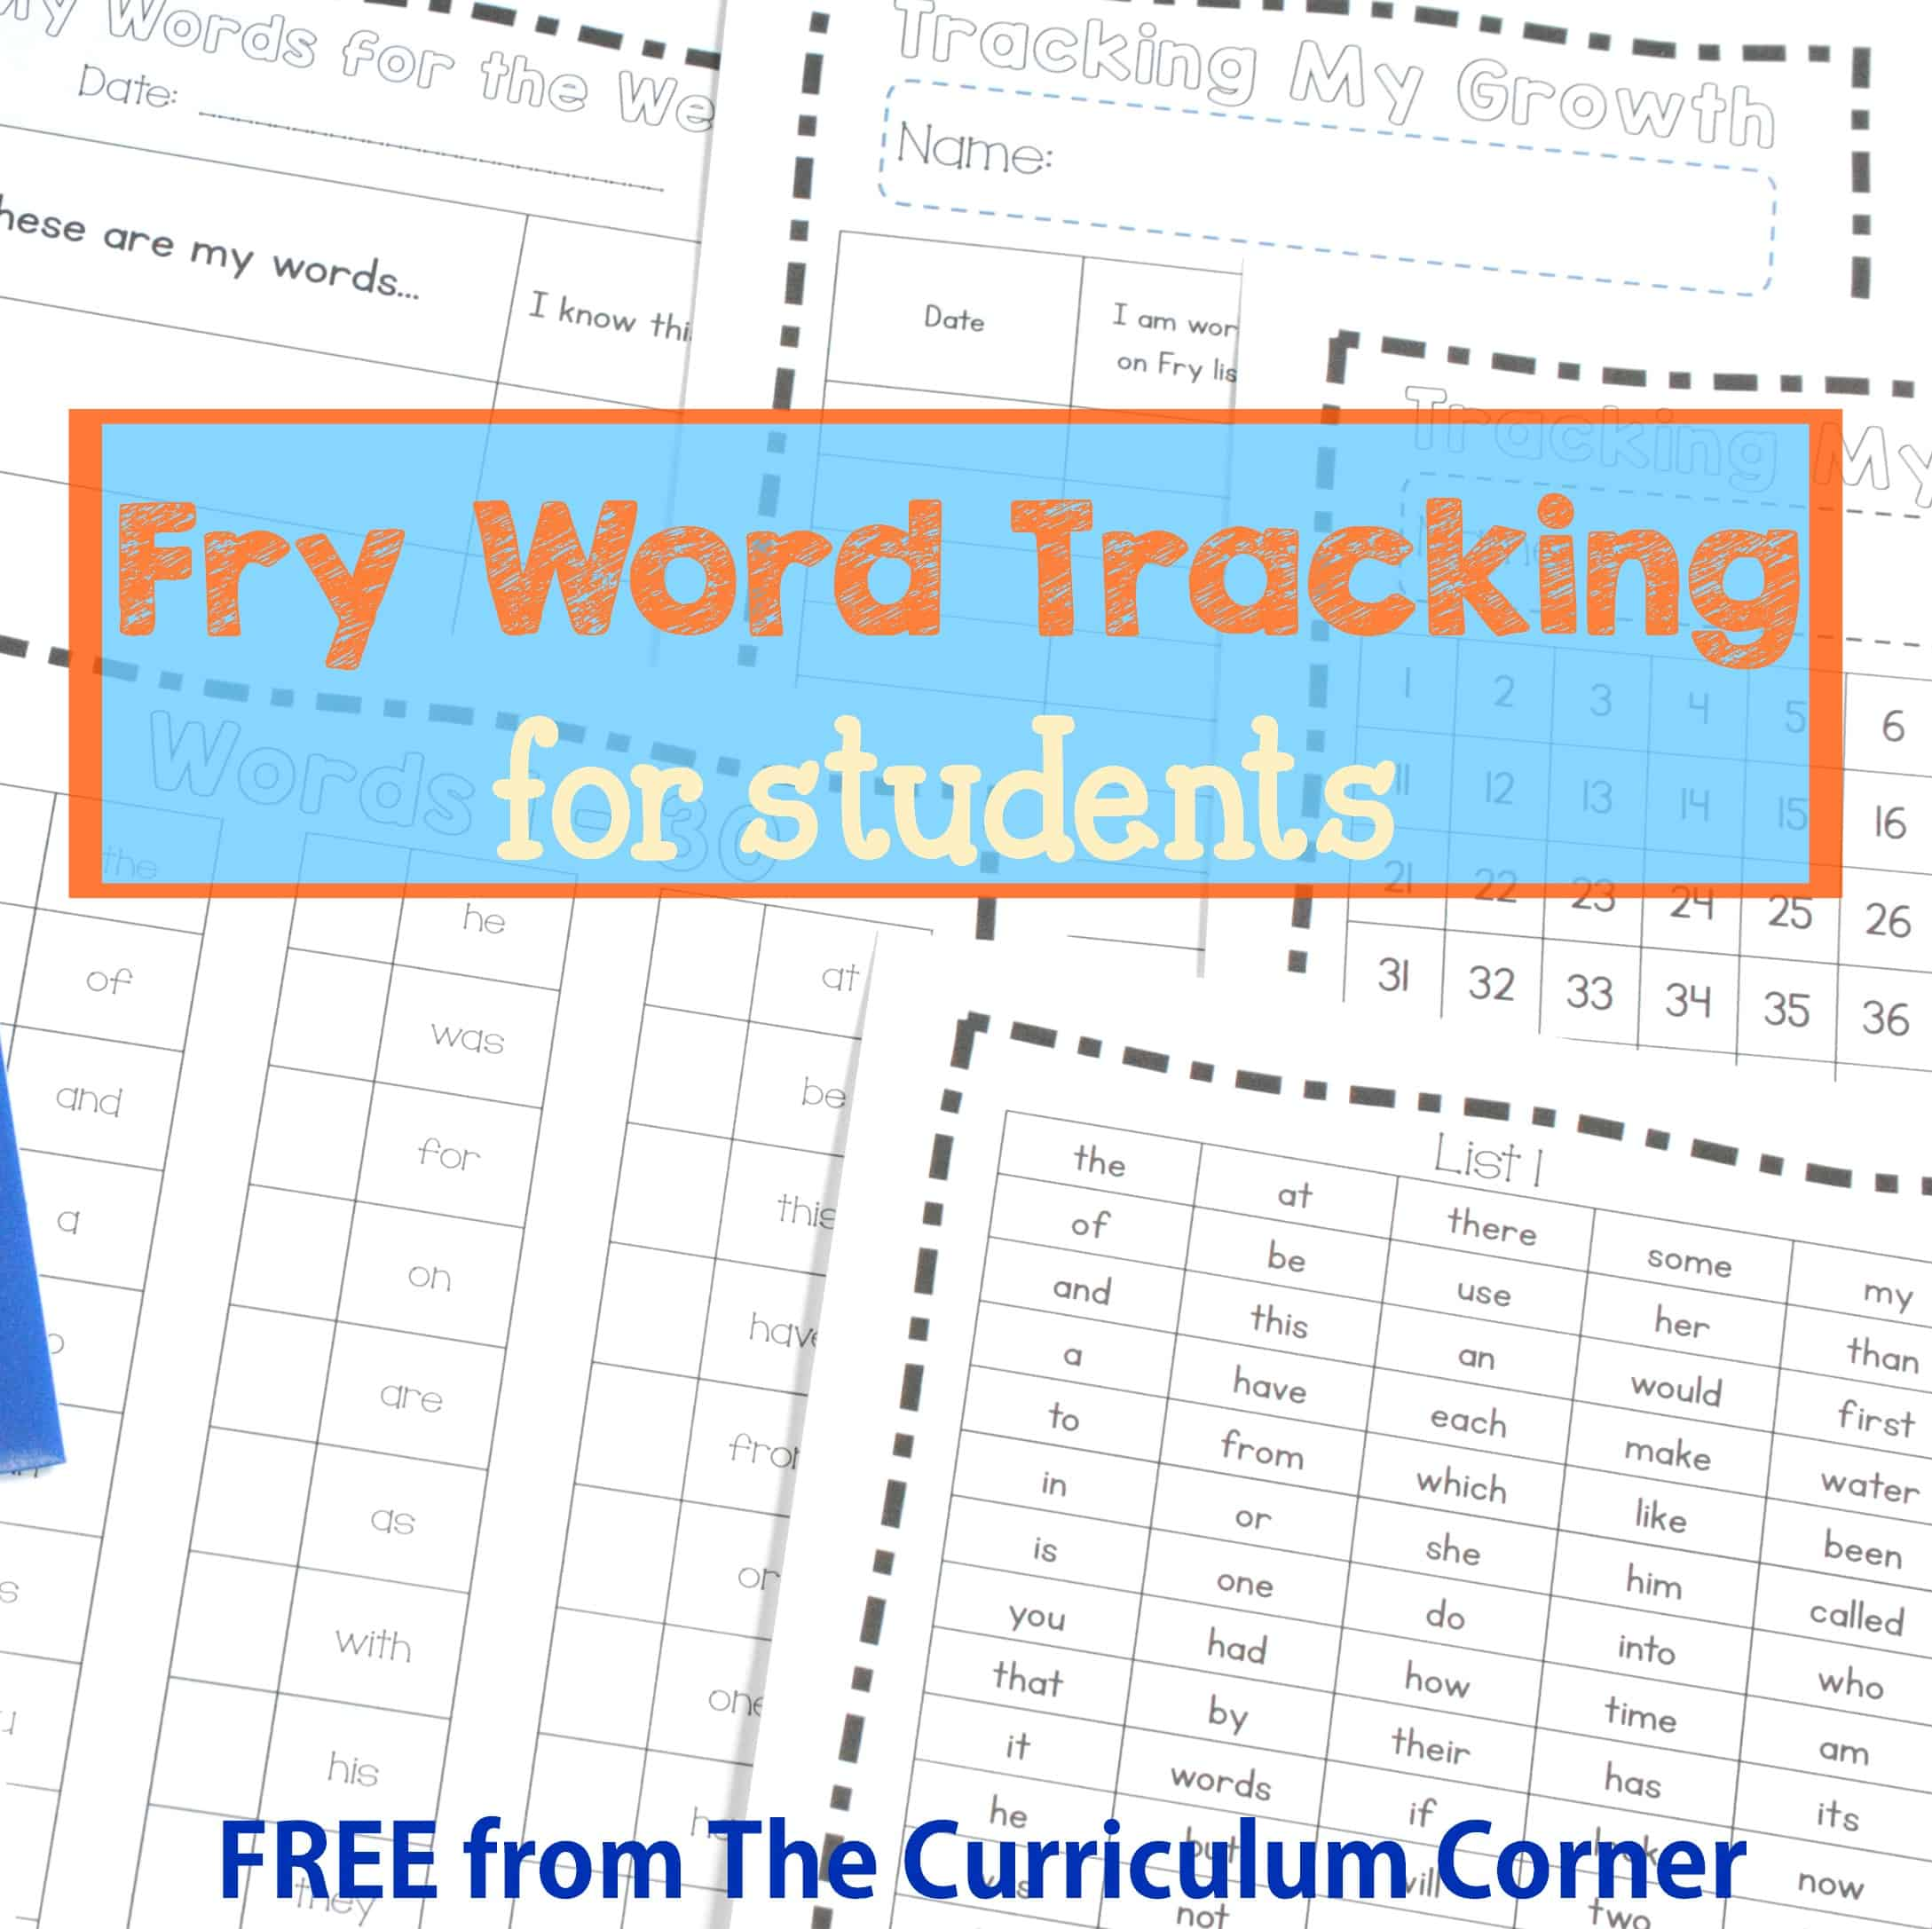 Fry Word Tracking for Students